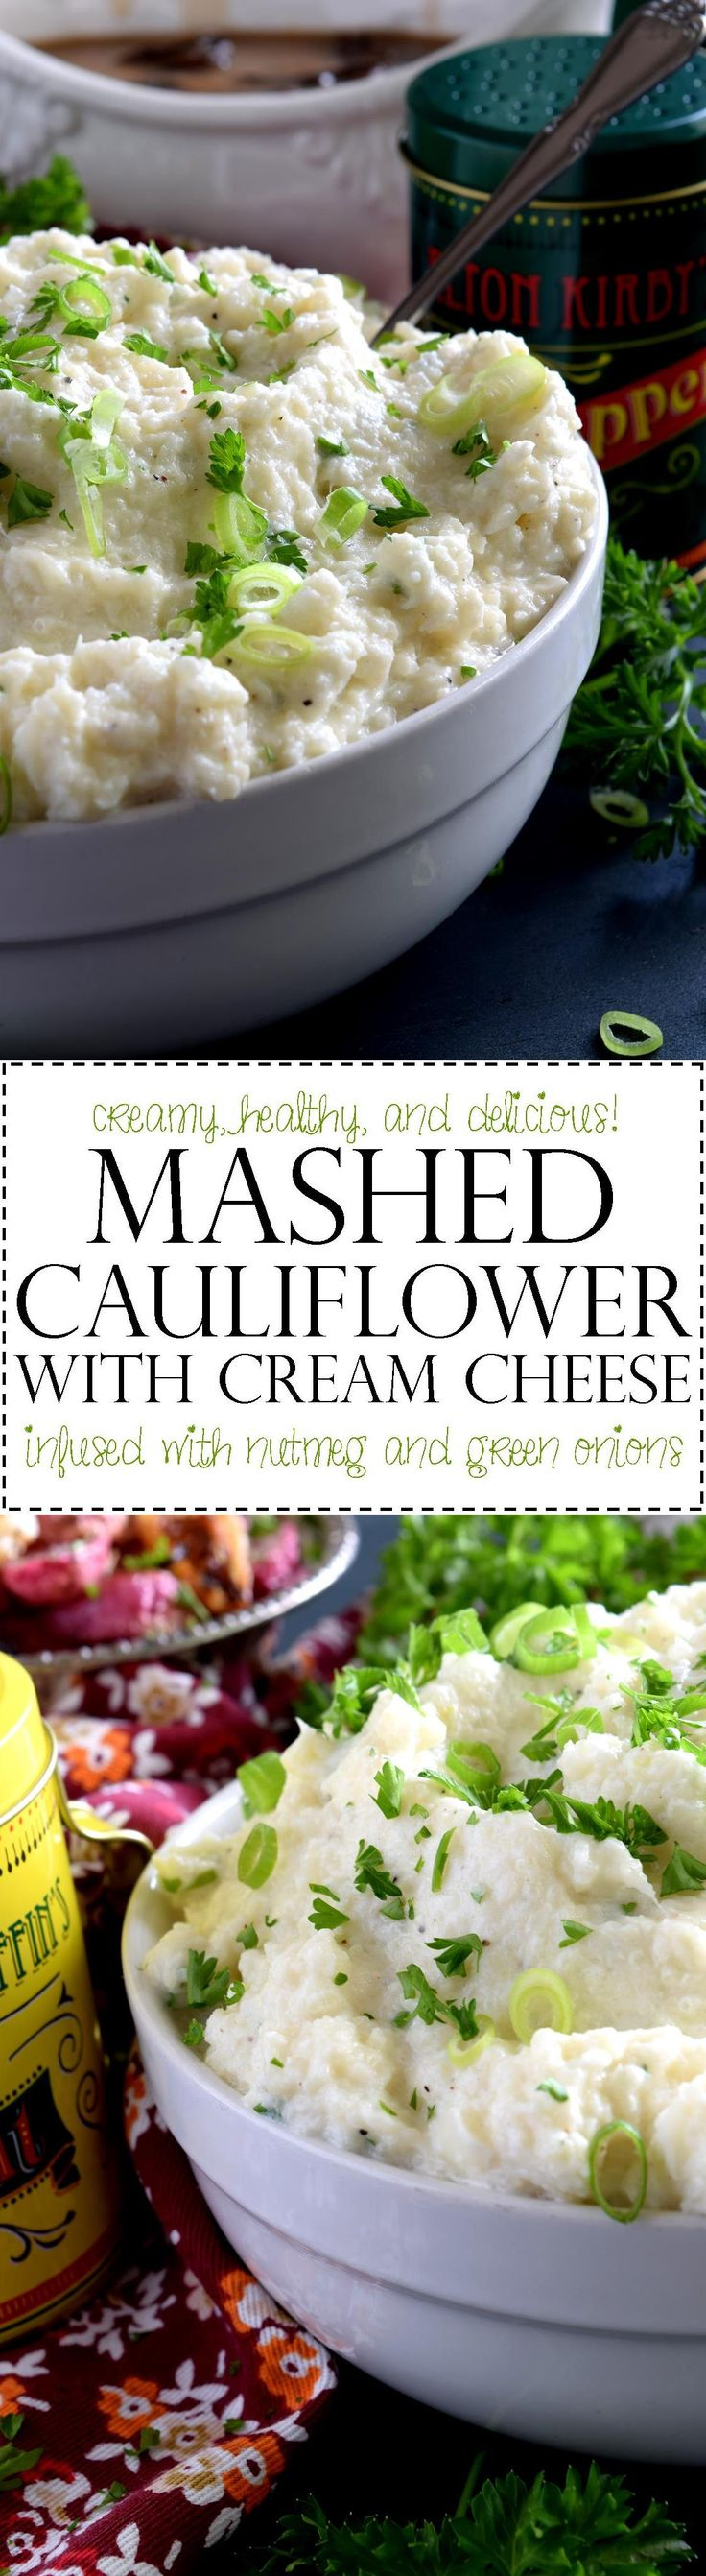 Mashed Cauliflower with Cream Cheese - A mashed potato substitute that's health conscious and free of butter and heavy cream.  Mashed Cauliflower with Cream Cheese is creamy, flavourful, and delicious.  The addition of fresh green onions adds a crisp, refreshing taste.